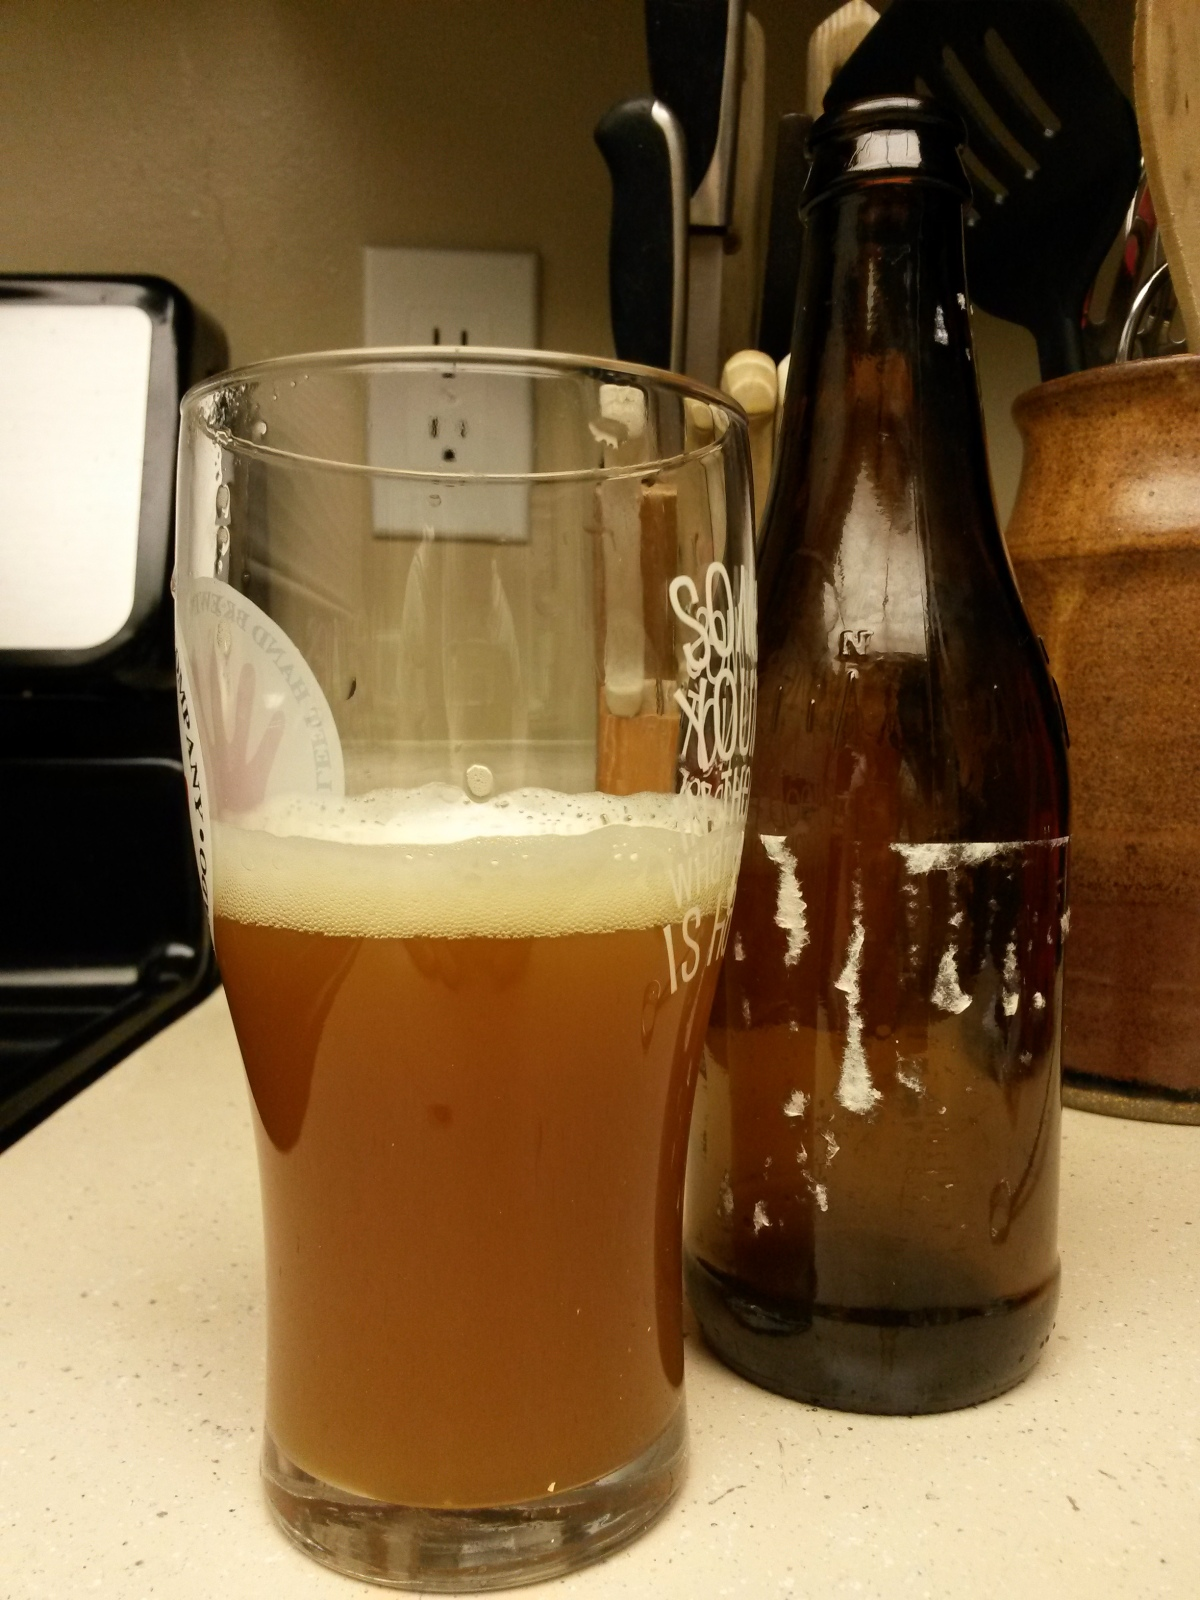 Our brew out of the bottle